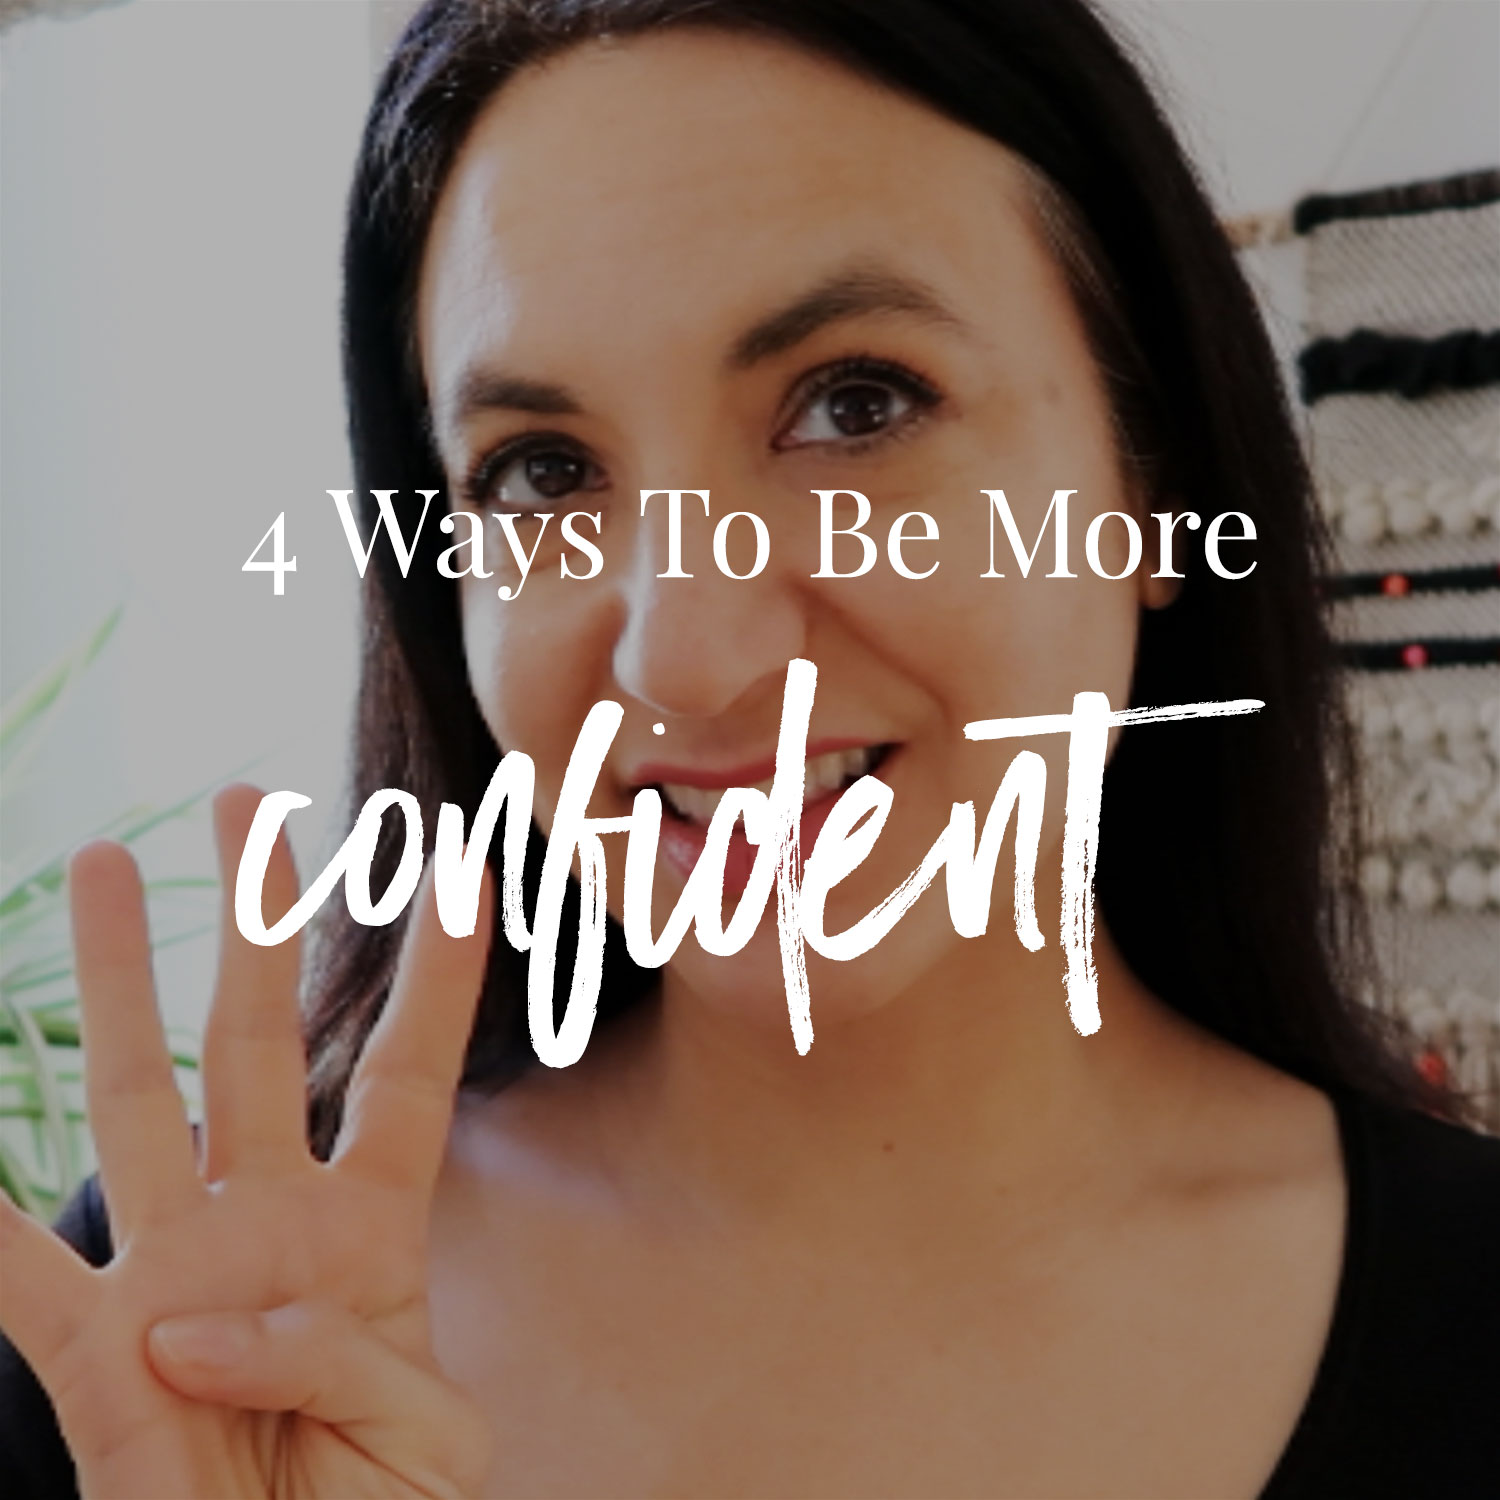 4 Ways To Be More Confident